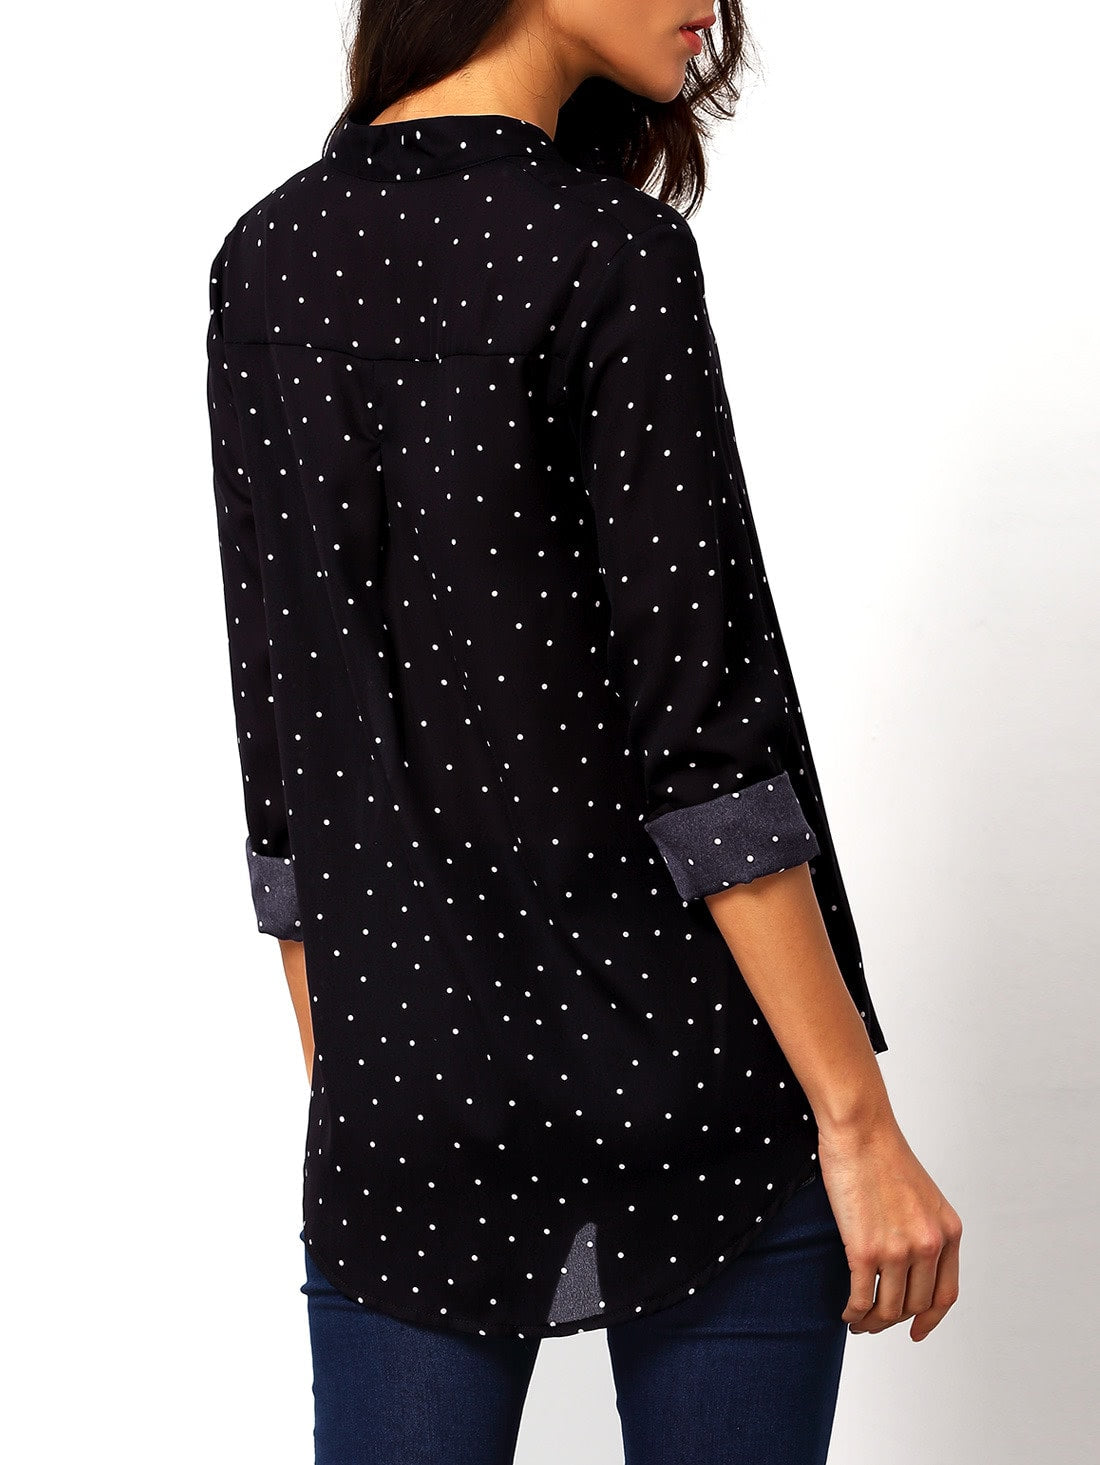 chemisier à pois -Noir - www.maboutiquefashion.com